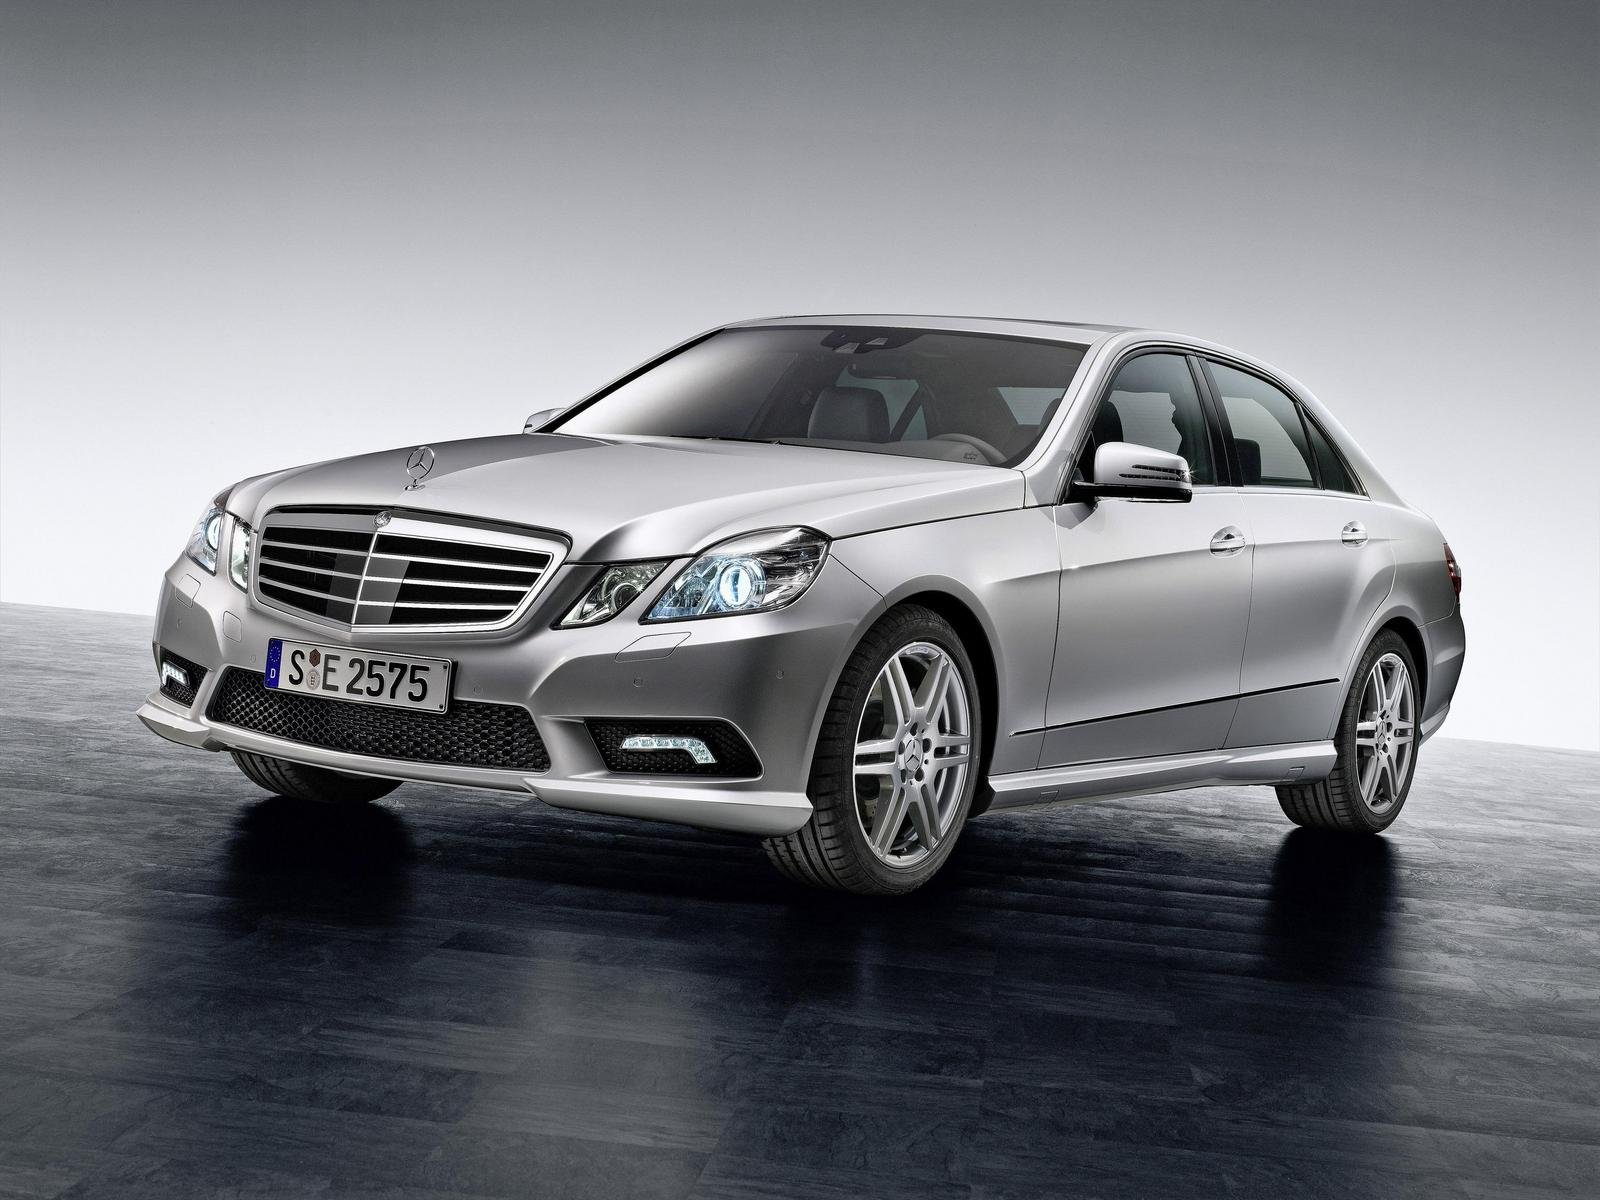 2010 mercedes e class review top speed. Black Bedroom Furniture Sets. Home Design Ideas